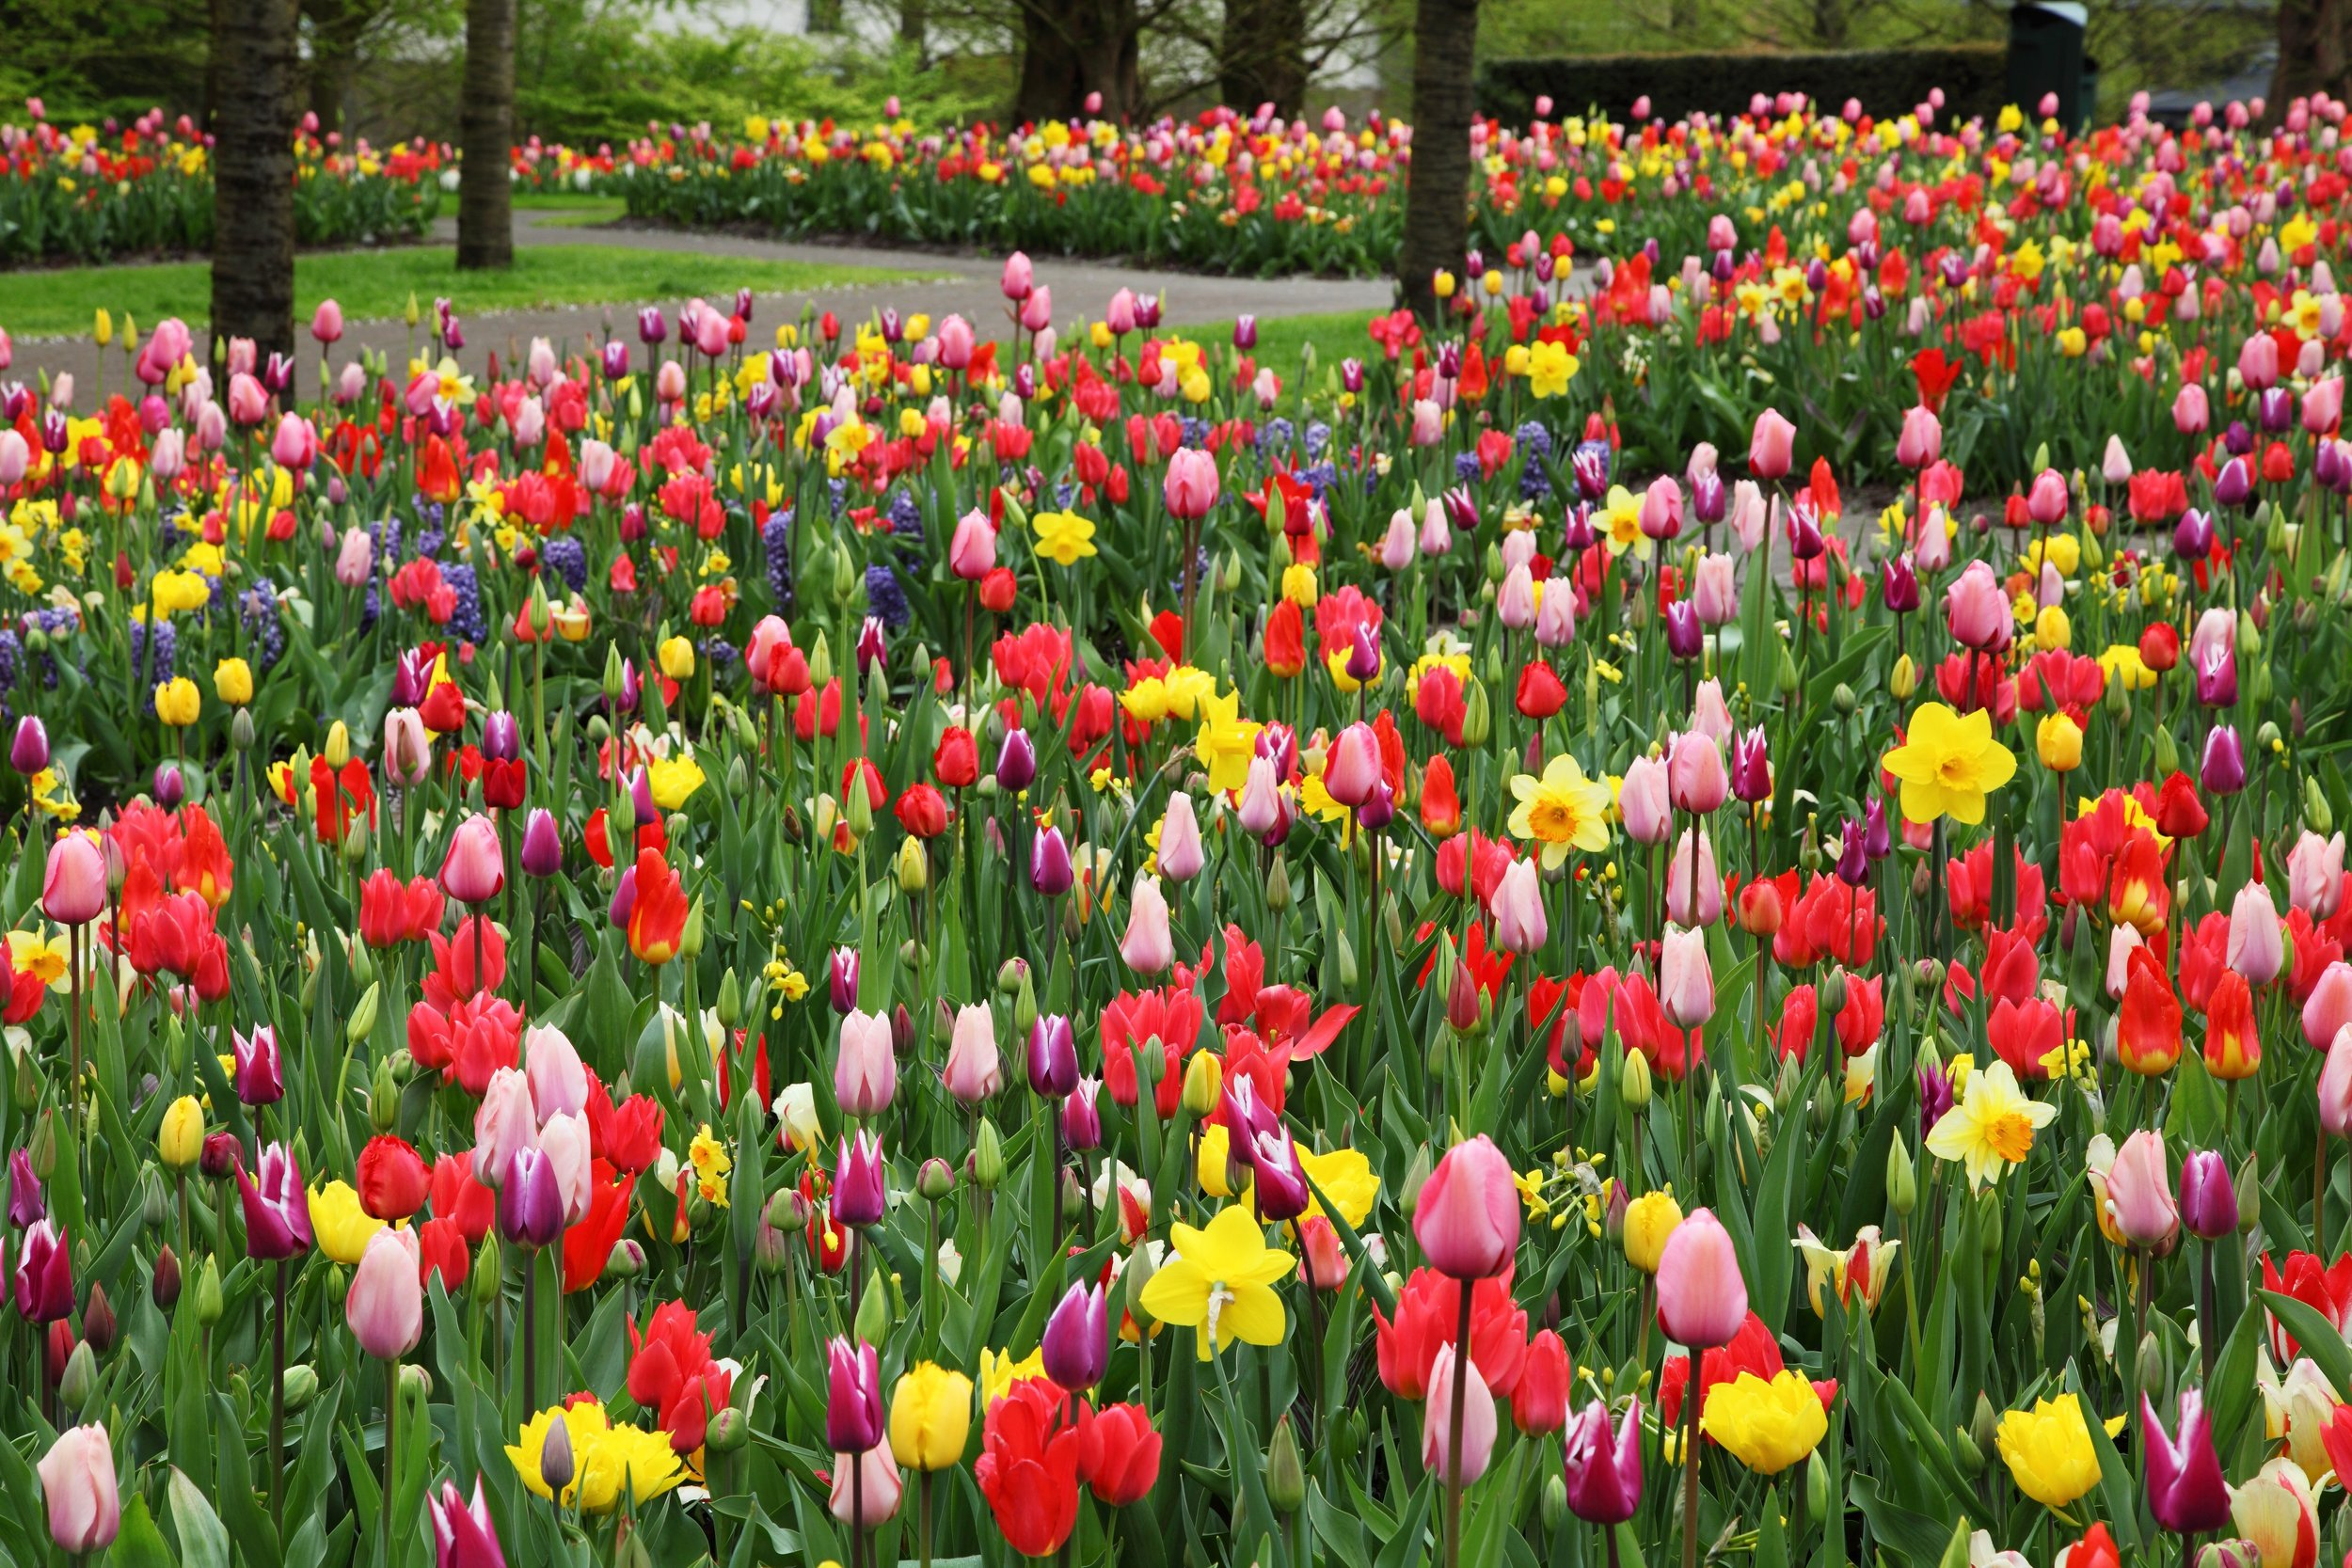 colorful-tulips-flower-field.jpg